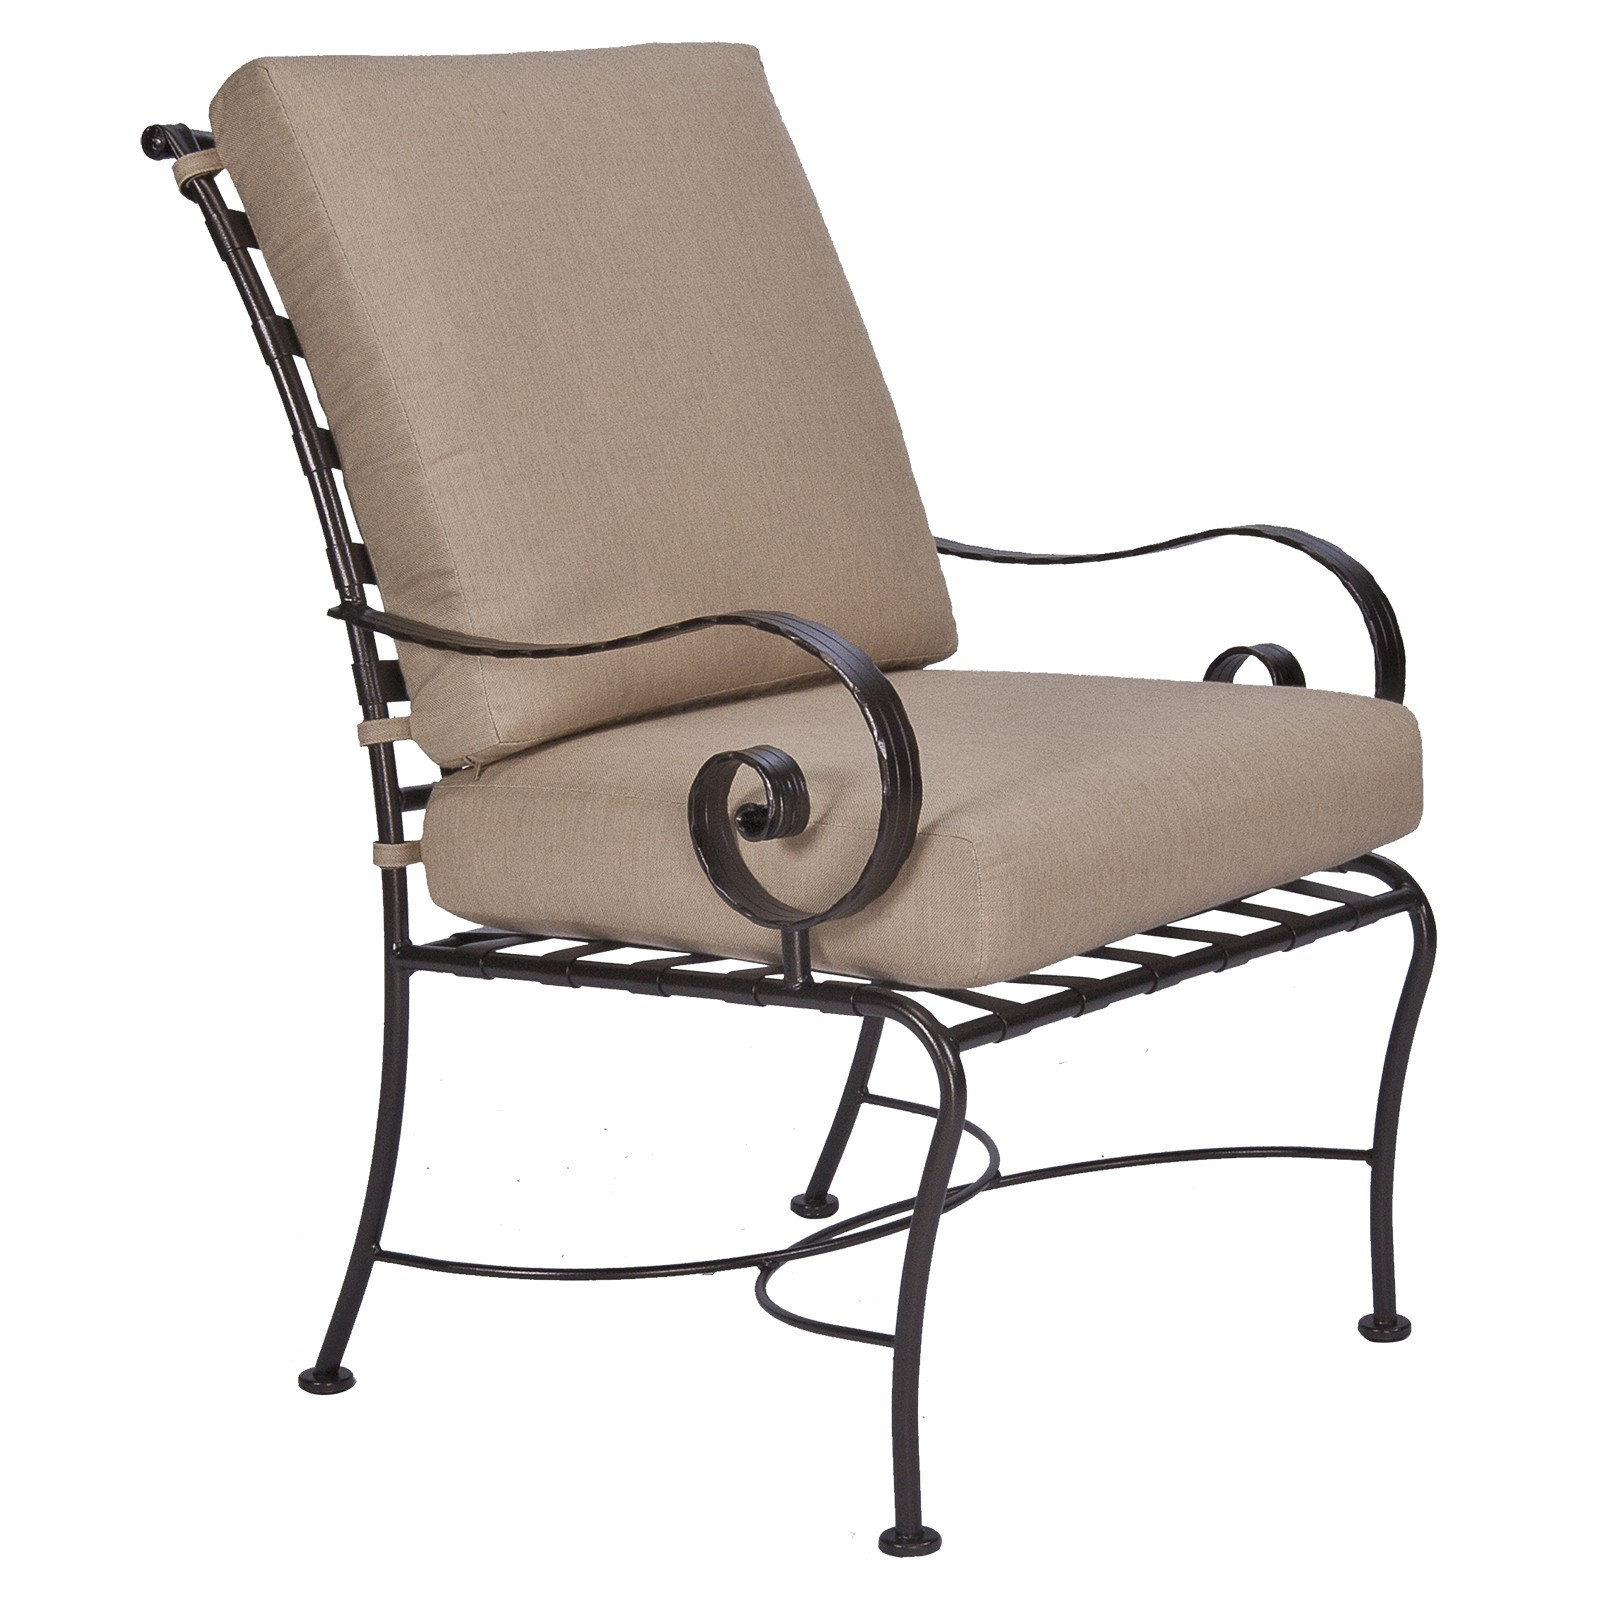 Classico-W Club Dining Arm Chair